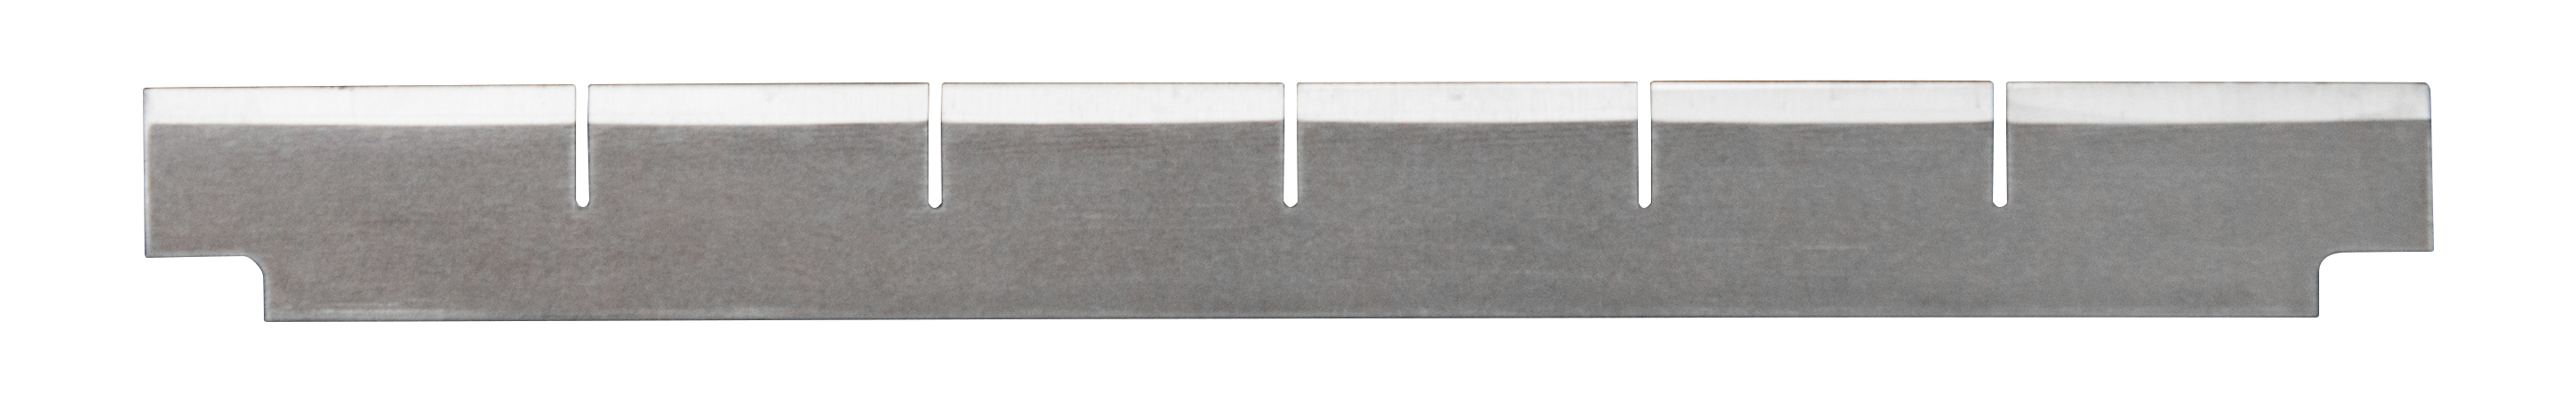 Winco HFC-500R replacement blade for hfc-series